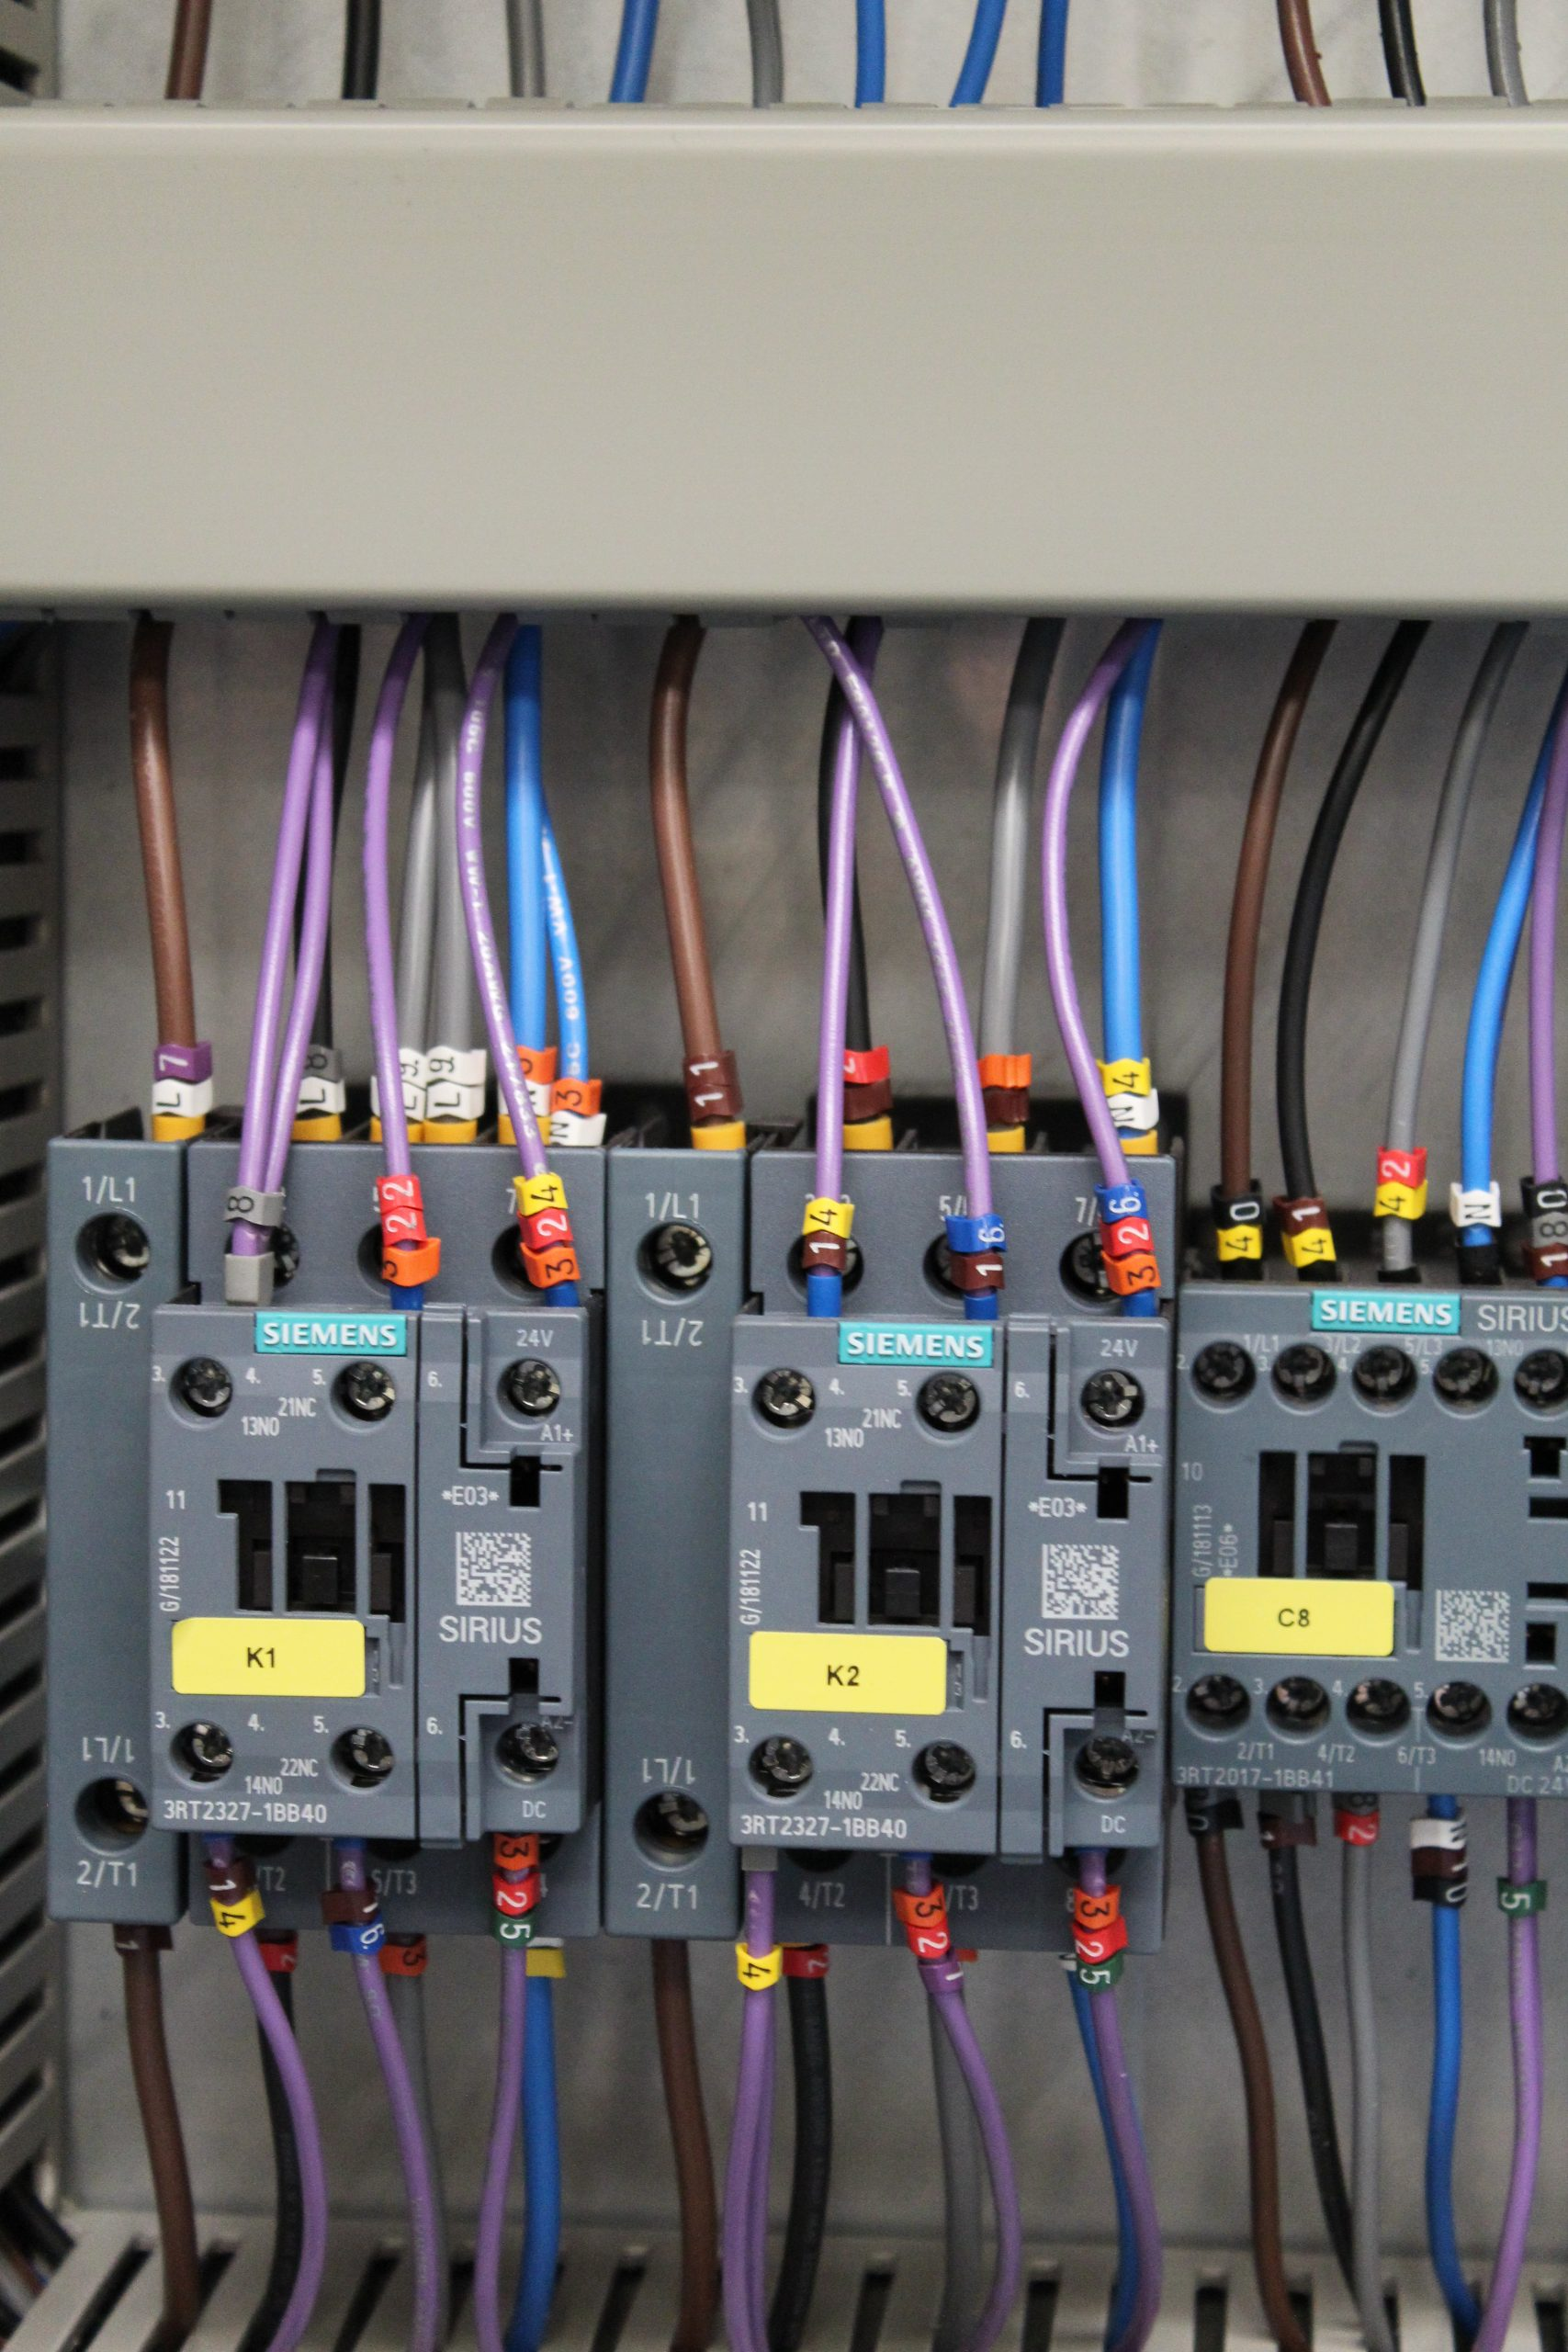 A close up image of the bespoke ALP system from Alphasonics.